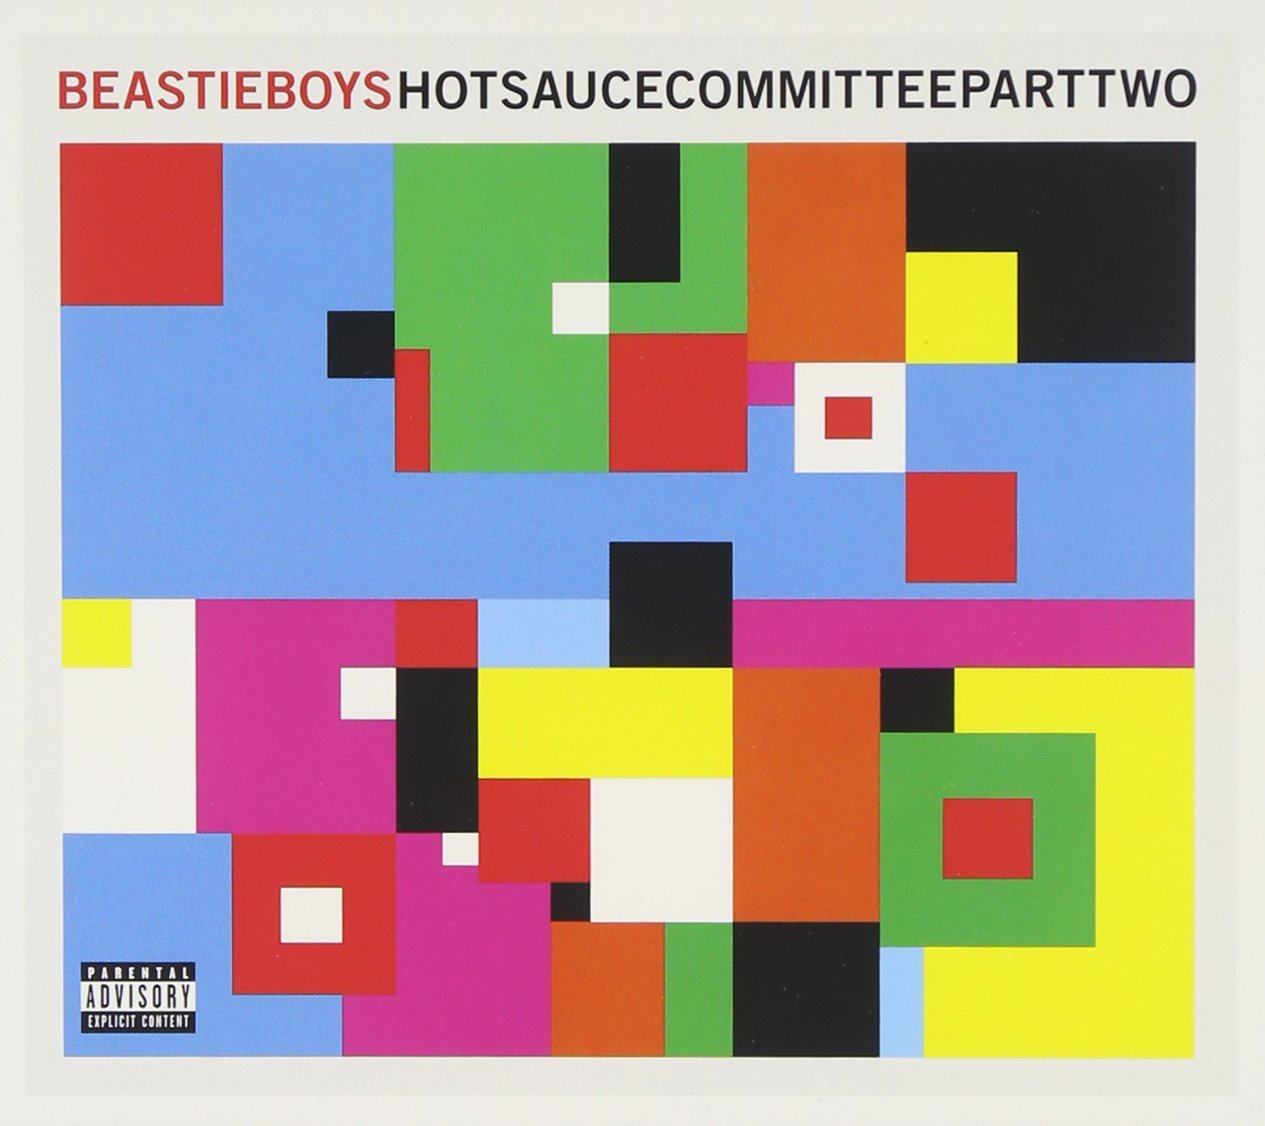 Beastie Boys, Hot Sauce Committee Part Two